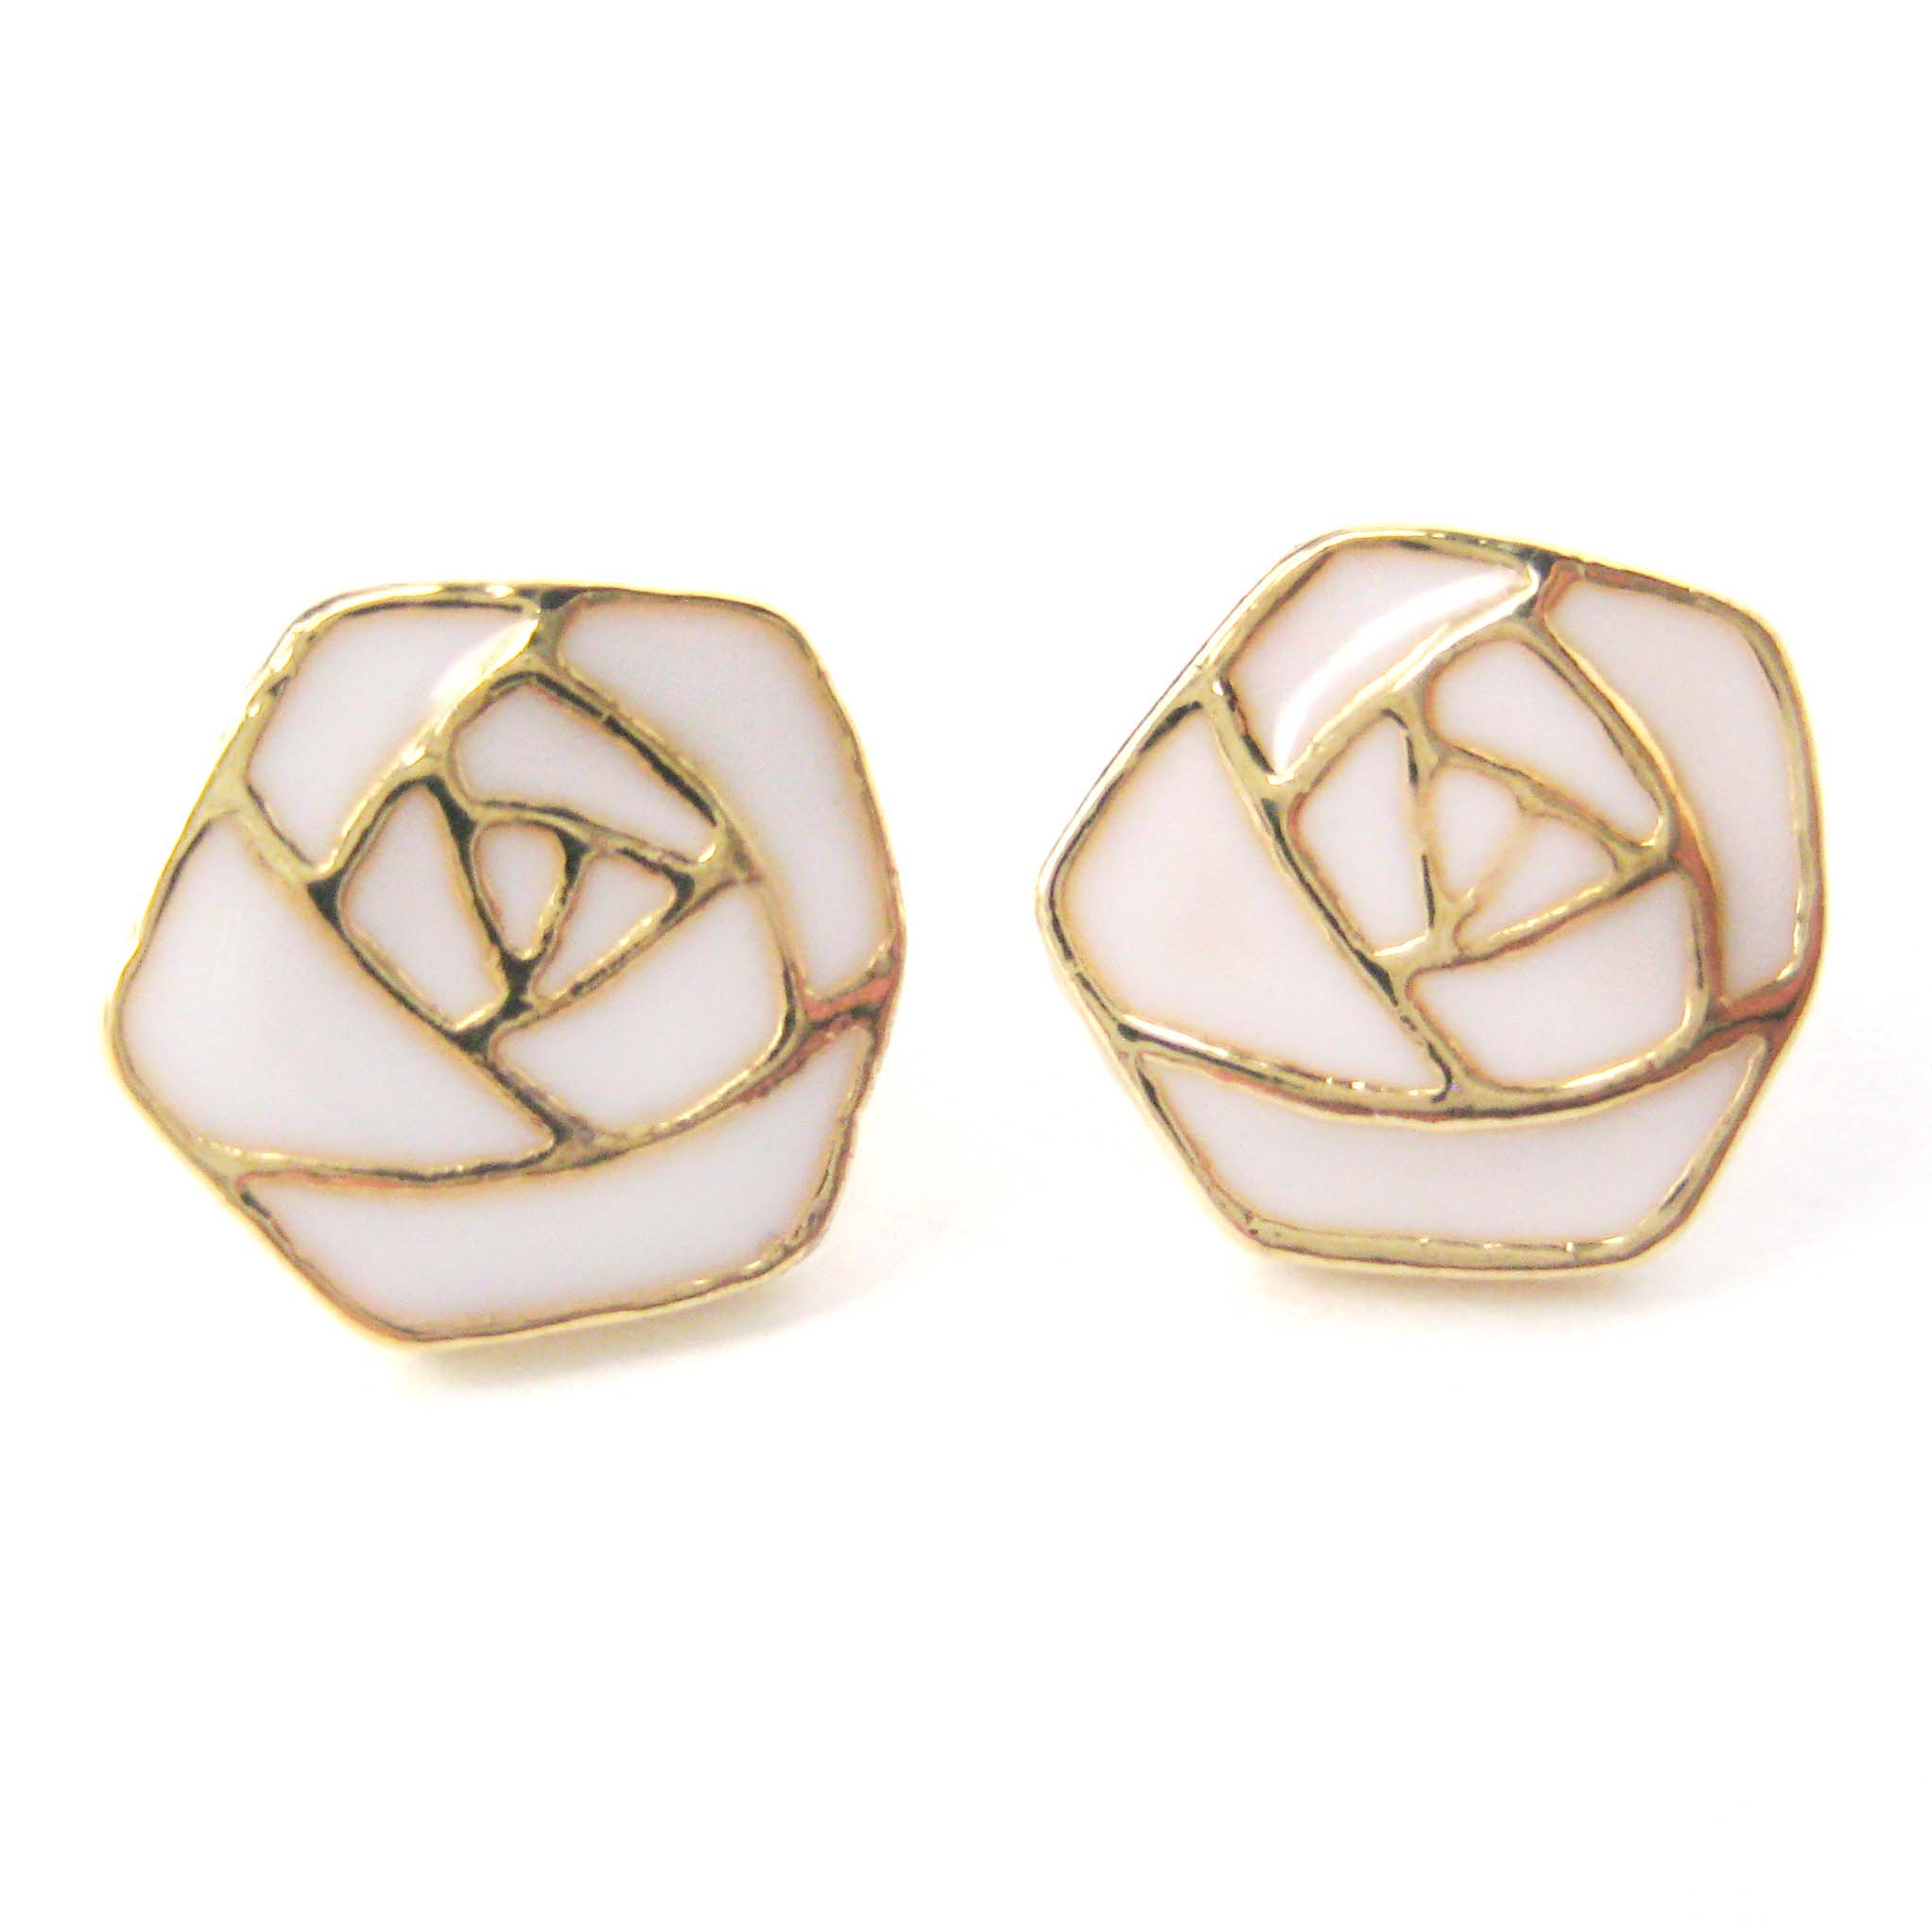 earrings simple tiny original product round jewelry plated sterling mm stud dainty geometric gold